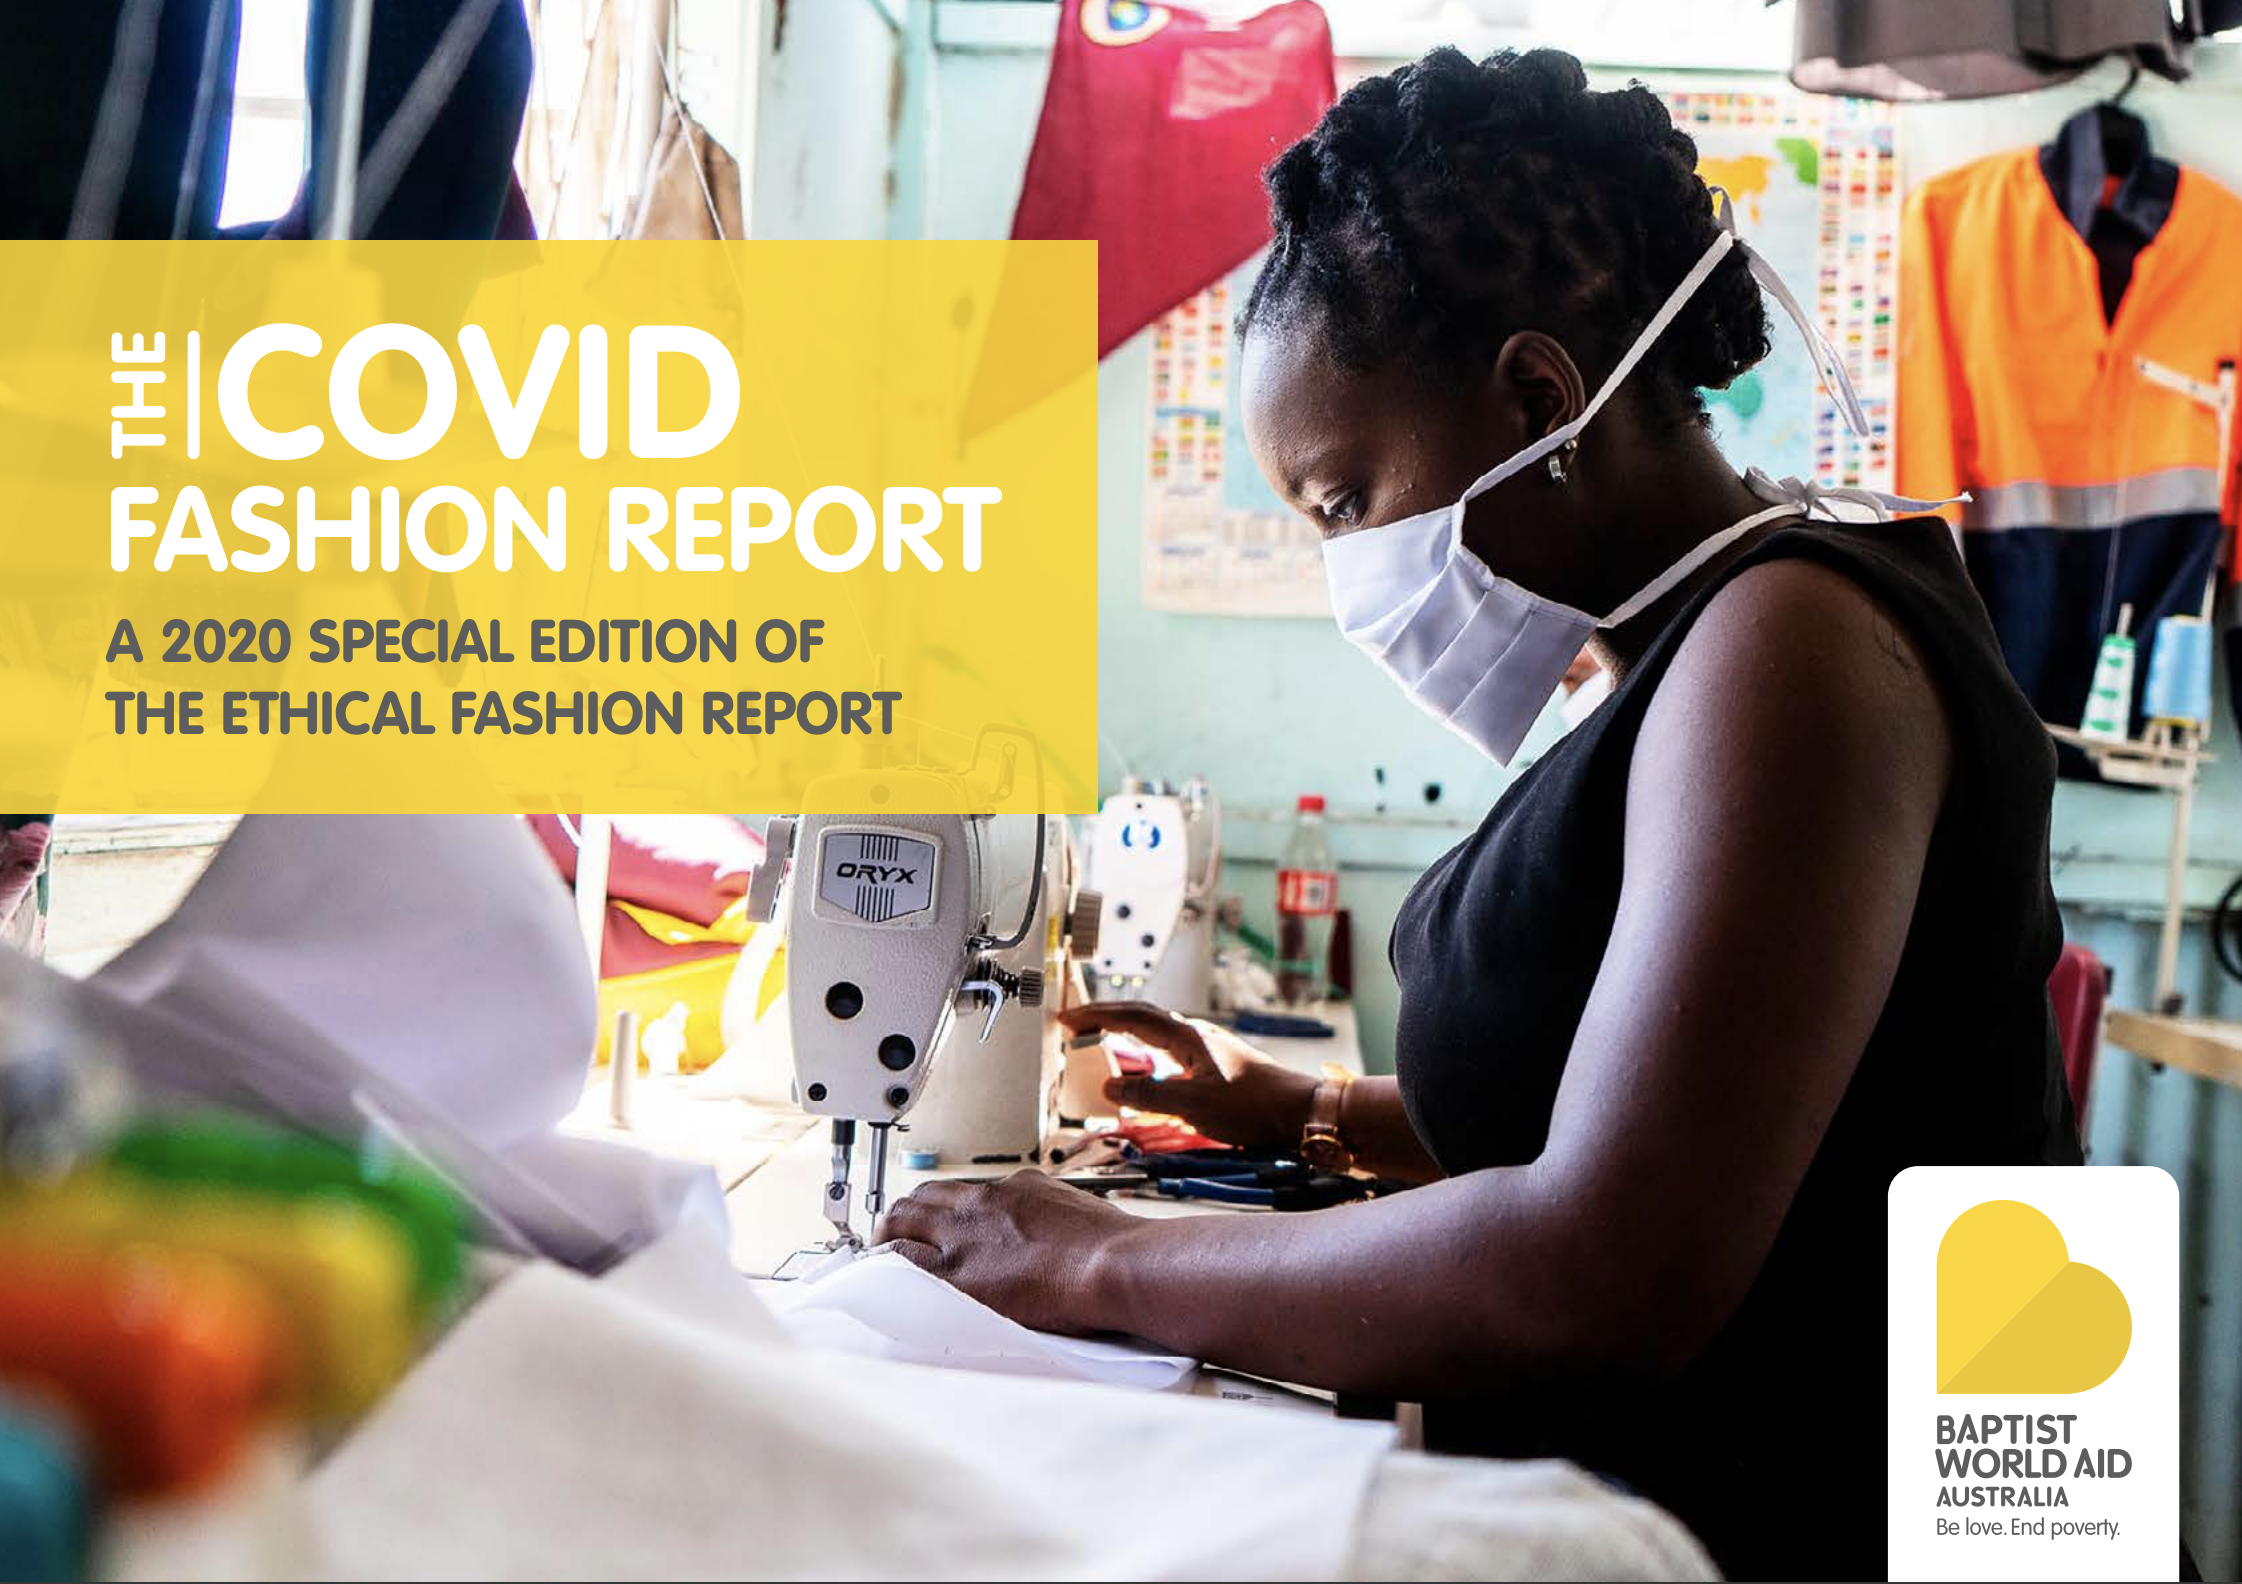 2020-COVID Fashion Report Baptist World Aid10-28 at 3.07.56 pm